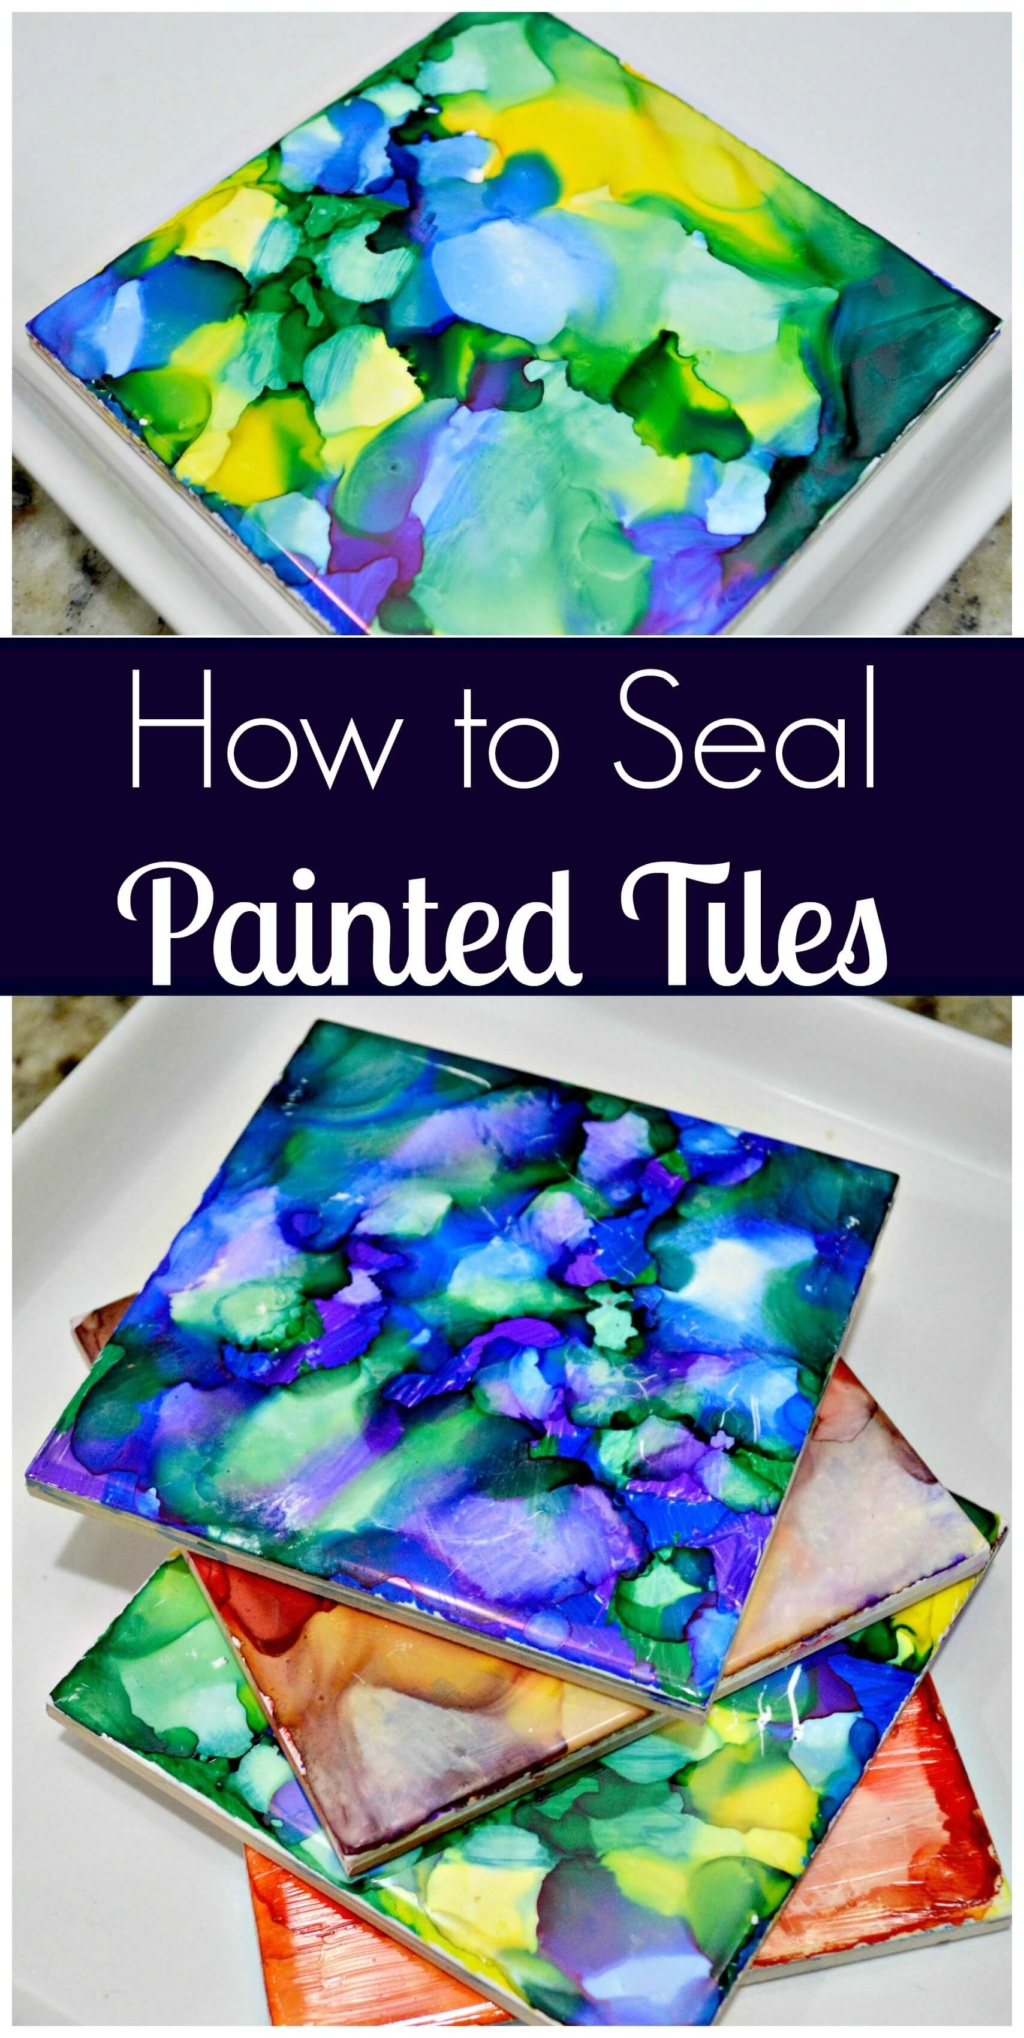 How to Seal Painted Tiles